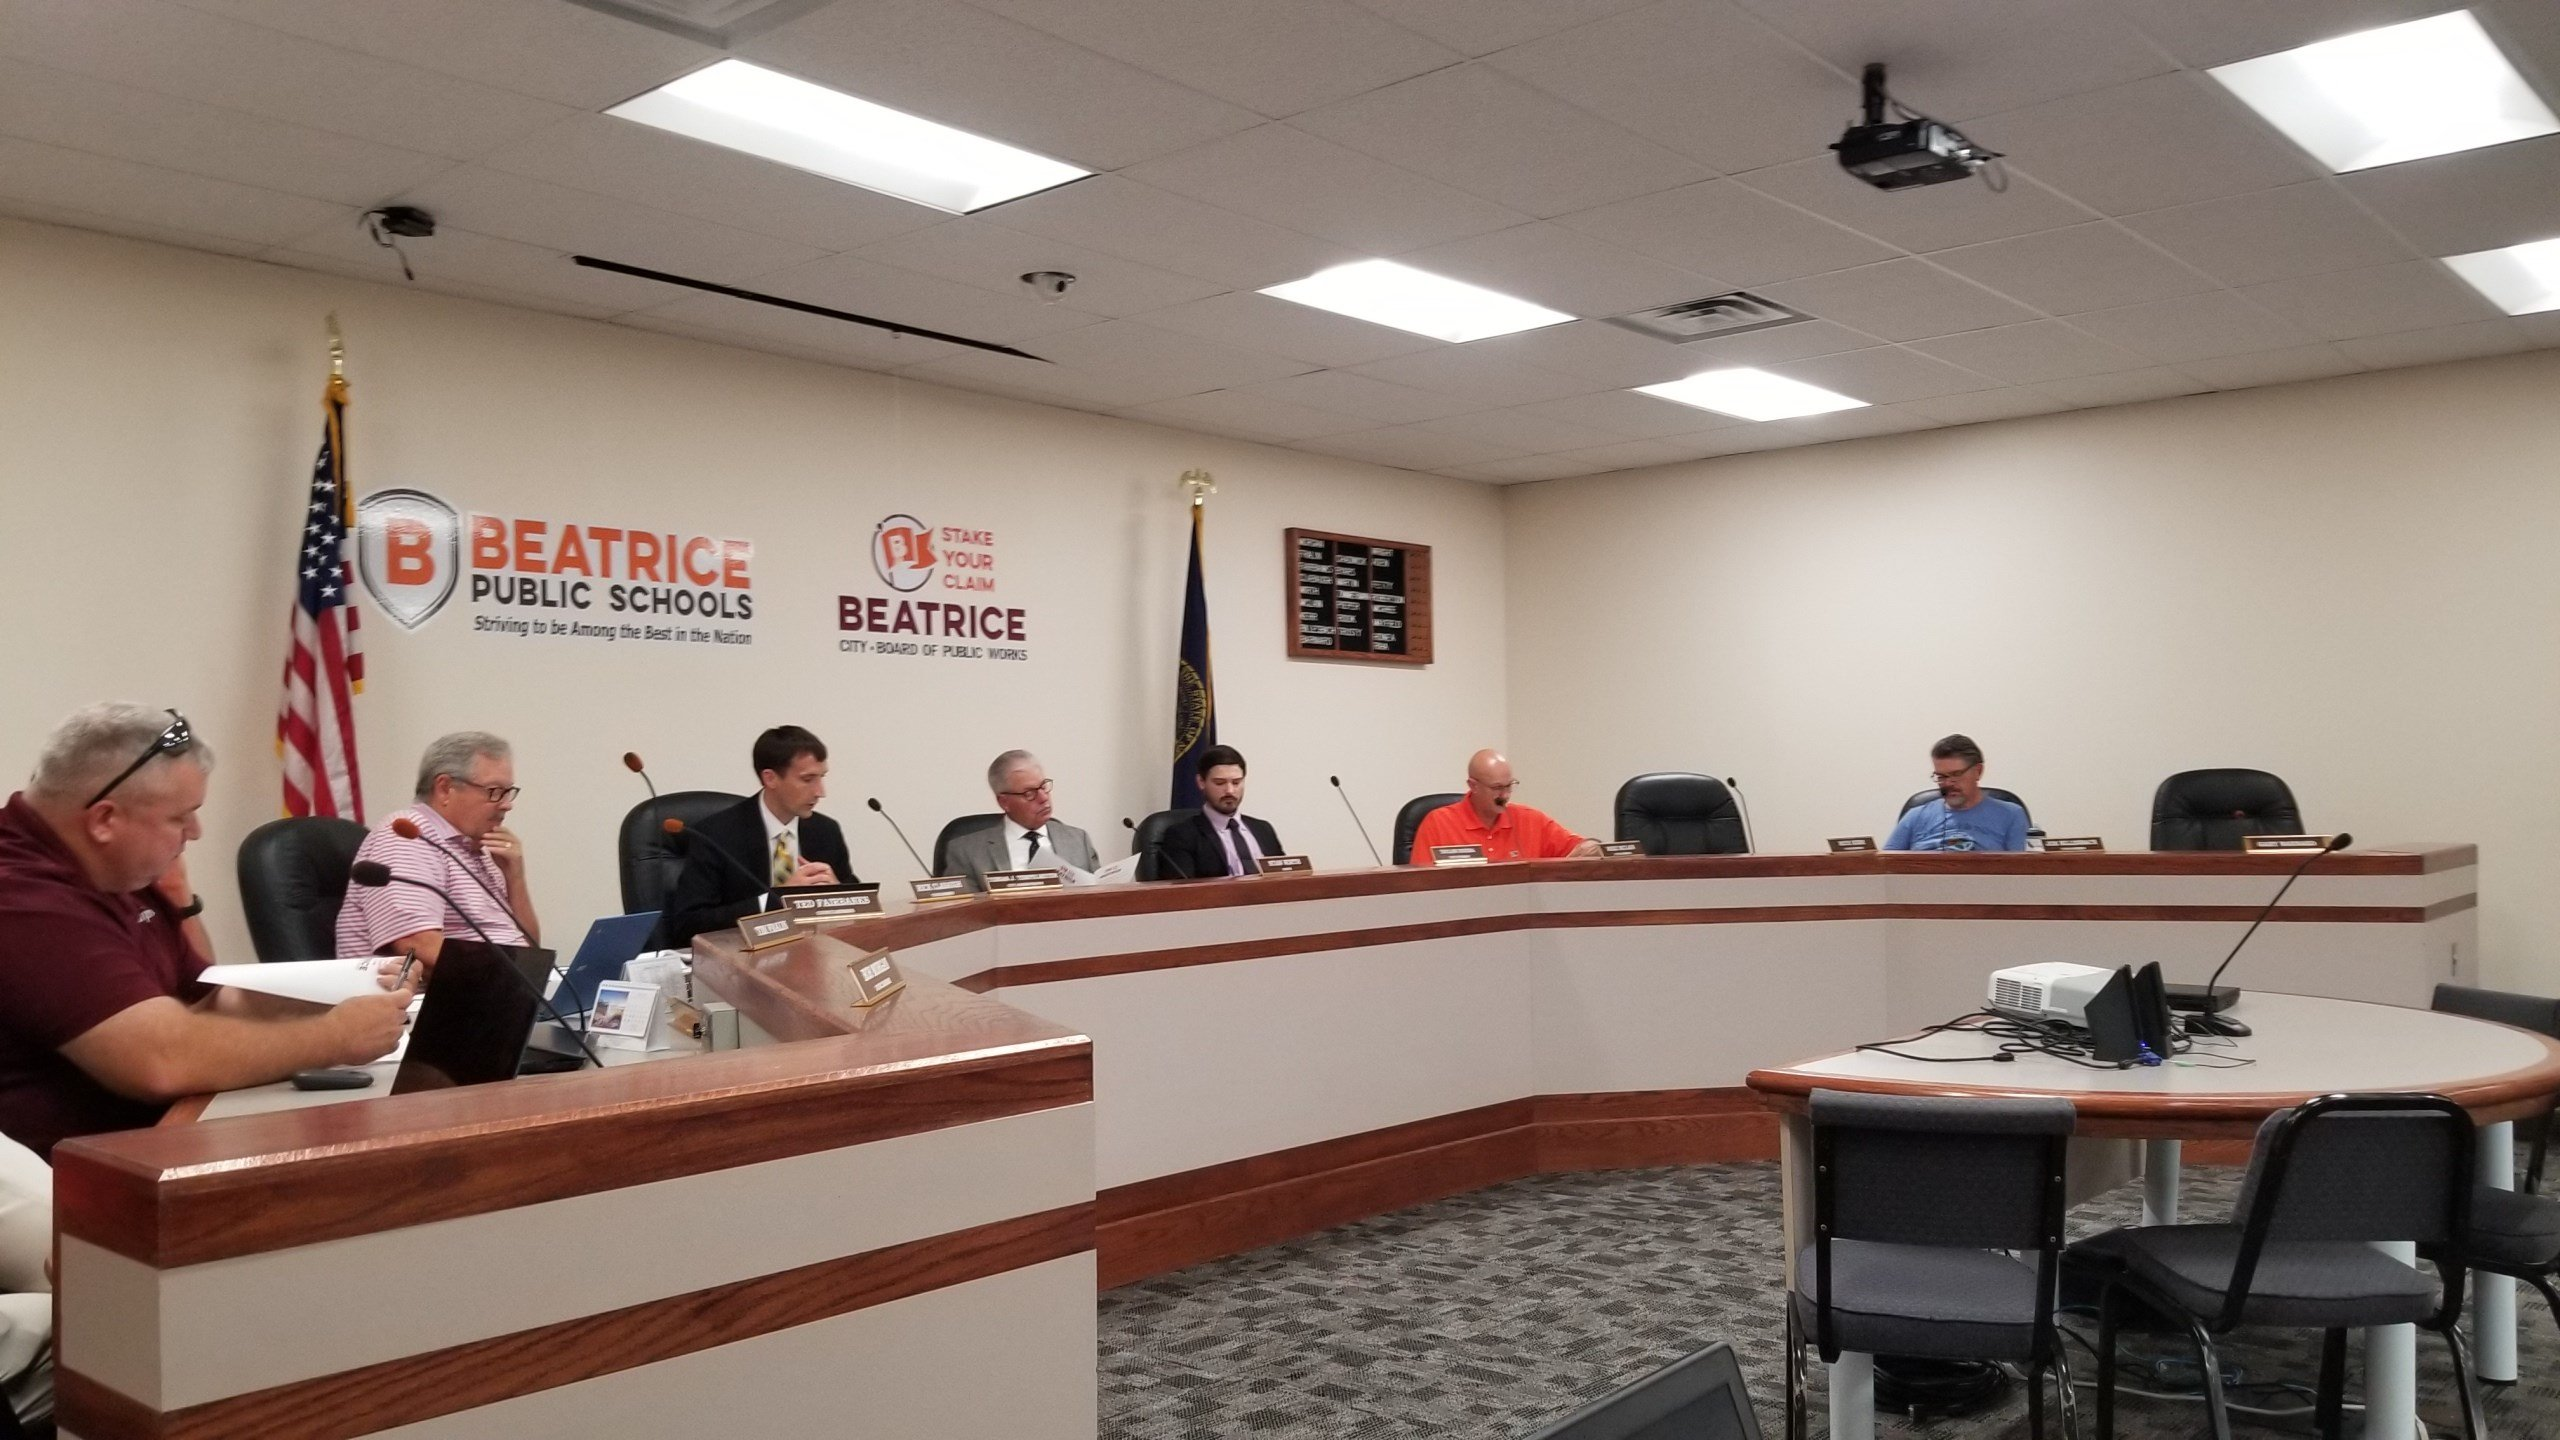 City of Beatrice discussing use of over $3 million in federal funding